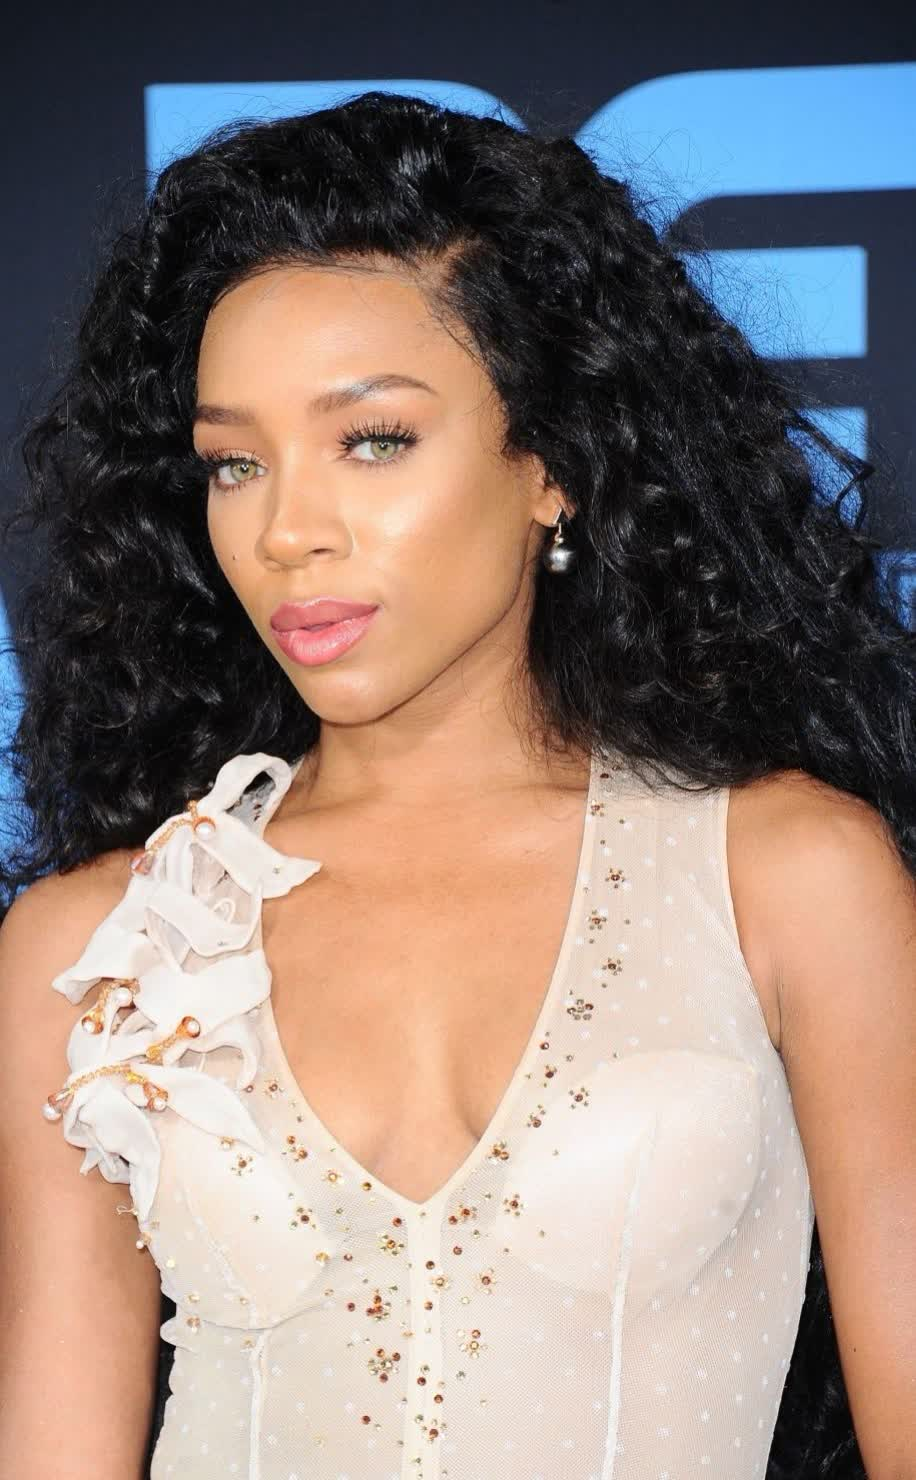 Forum on this topic: Piper Curda, lil-mama/